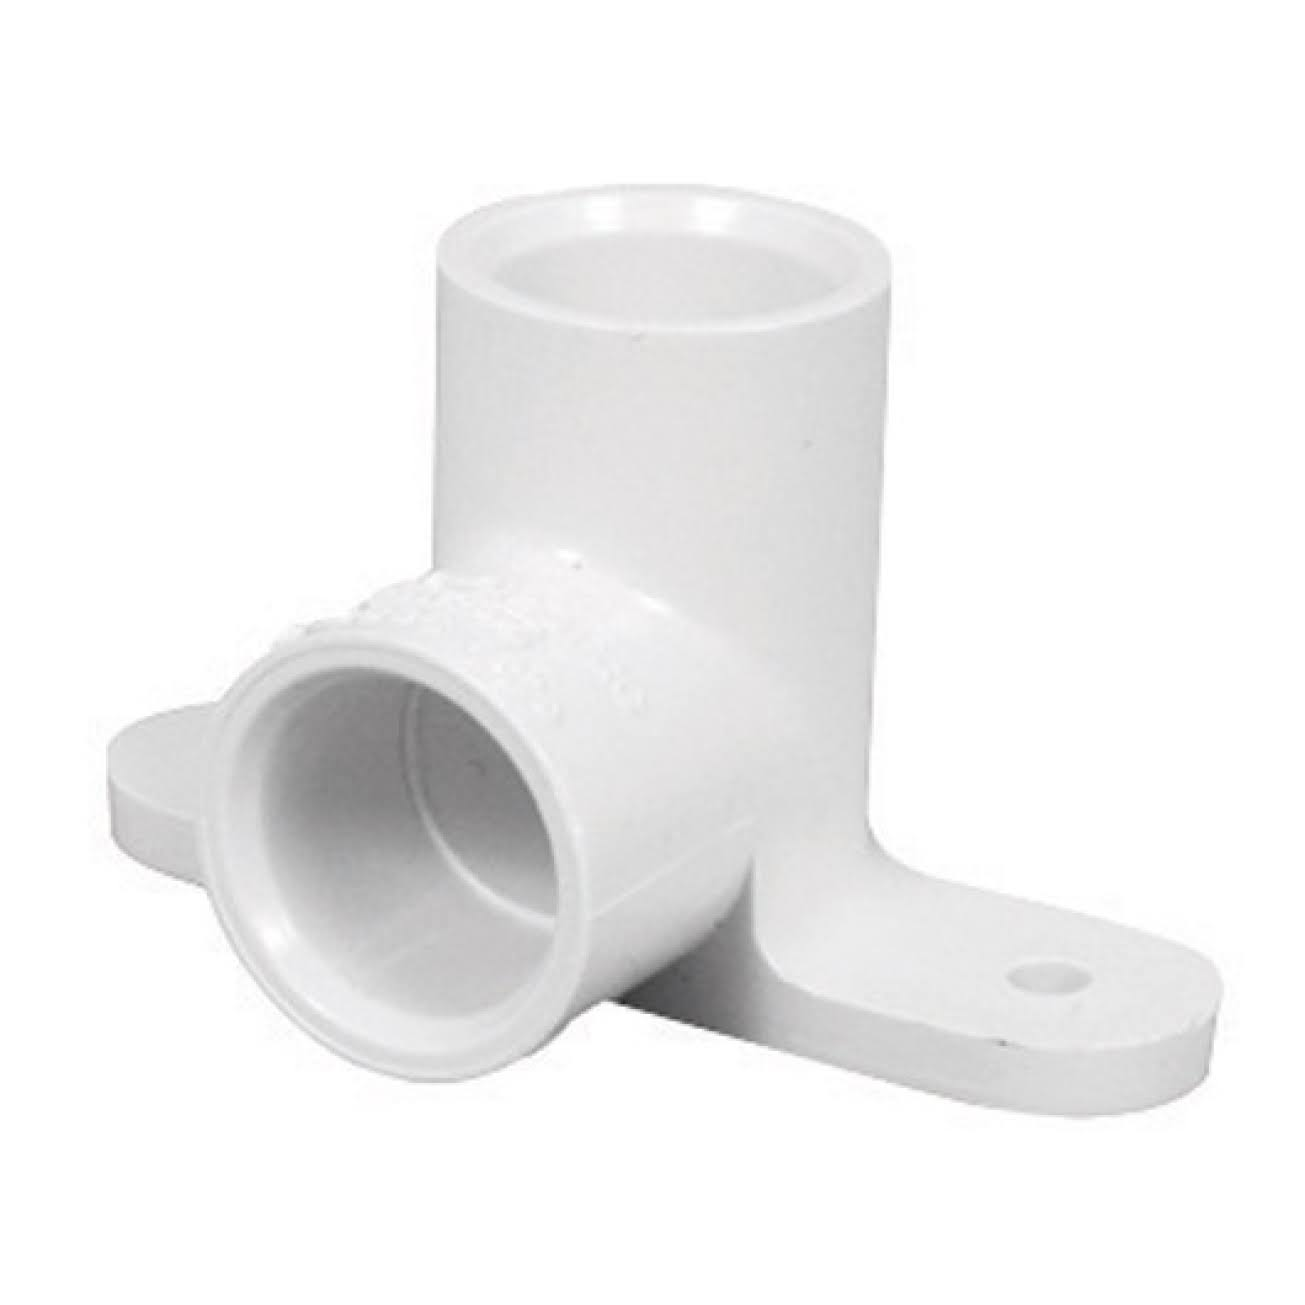 KBI CPVC CTS Drop Ear 90 Degree Socket Elbow - 1/2 in